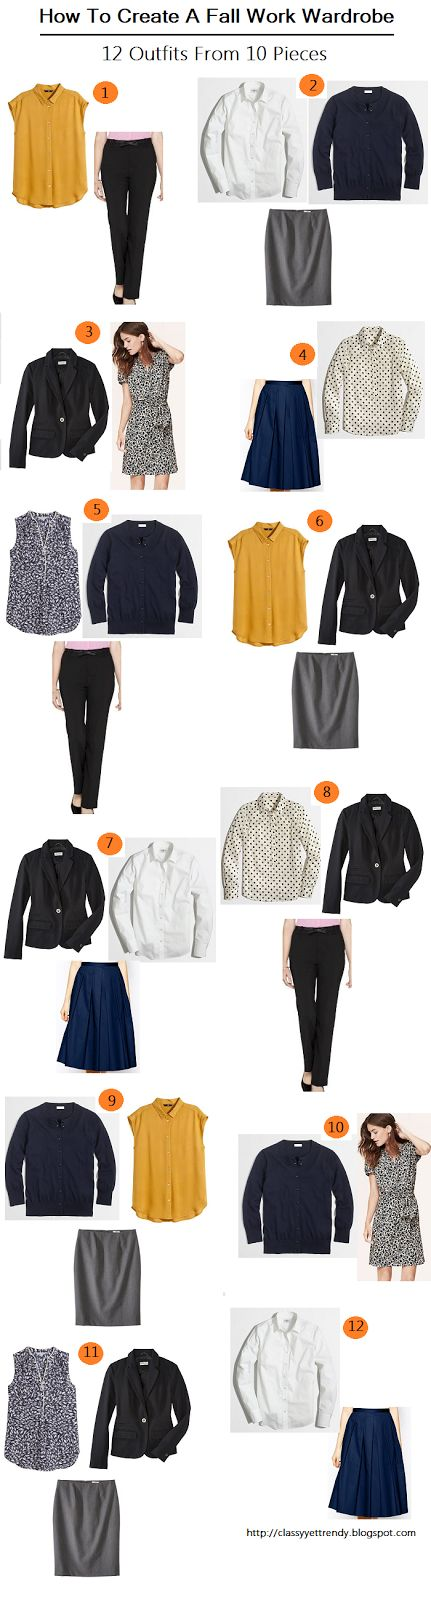 Classy Yet Trendy: How to Create A Fall Wardrobe Part II: 12 Outfits From 10 Pieces